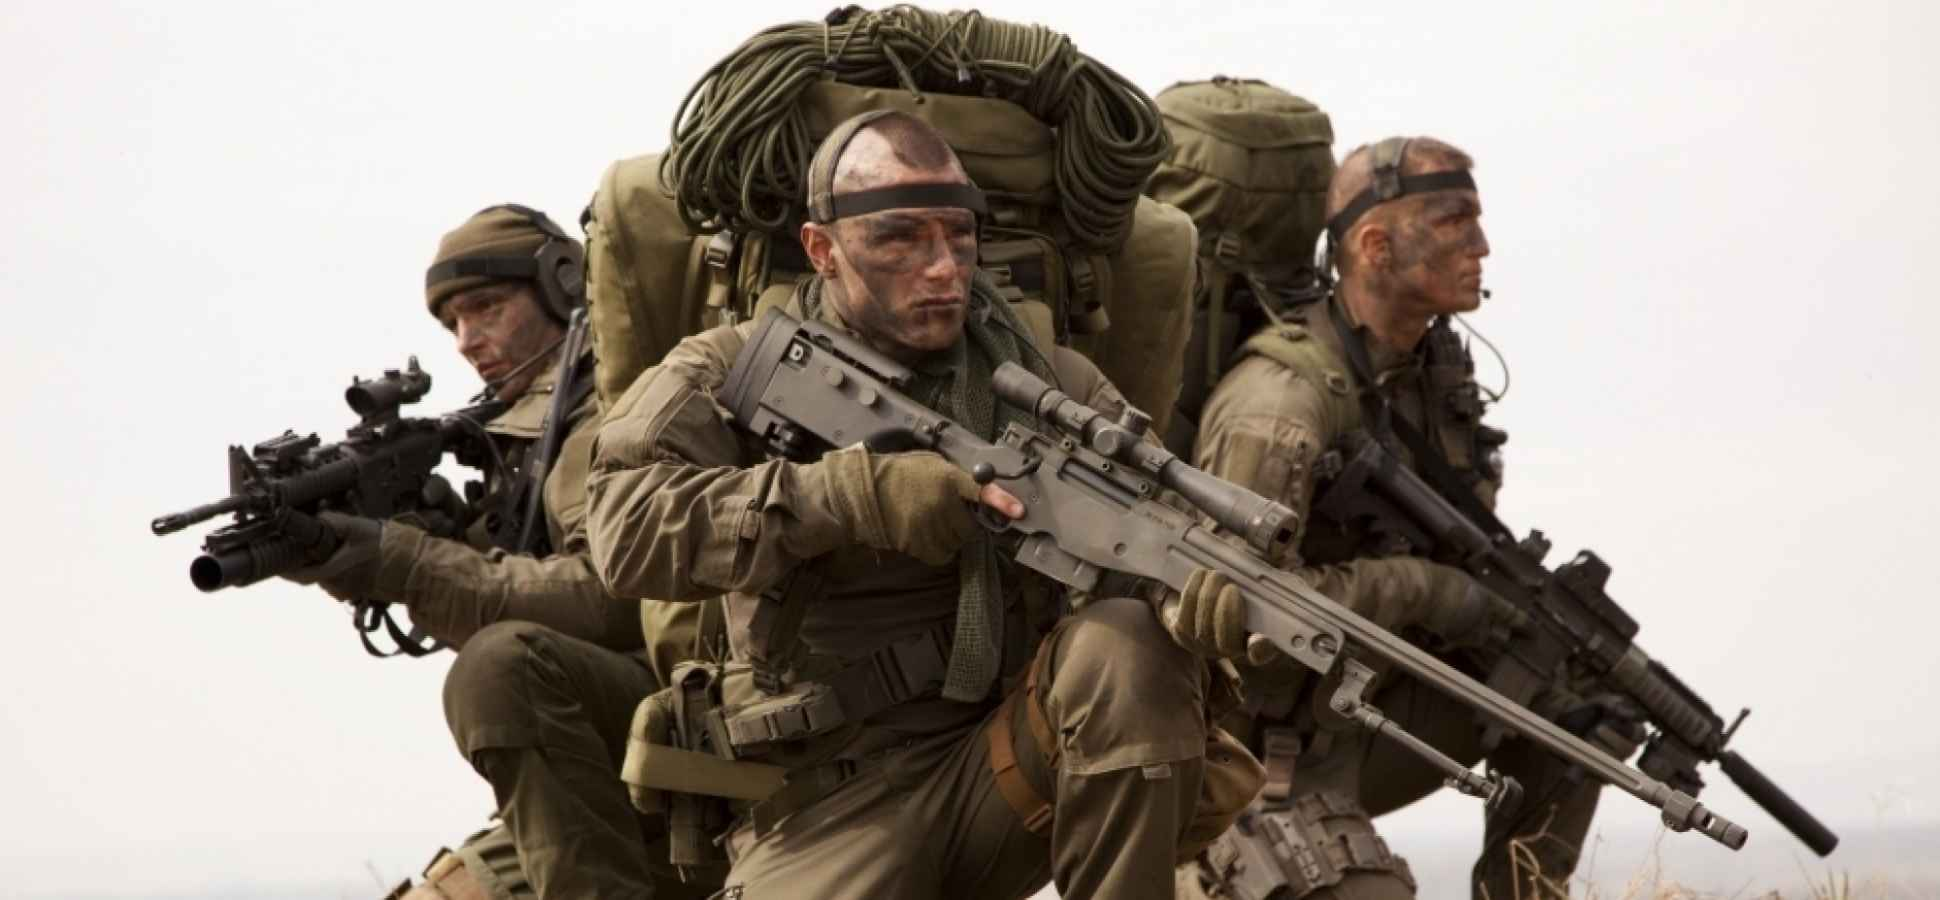 Want a Rock-Solid Game Plan for Your Business? A Navy SEAL Always Does This